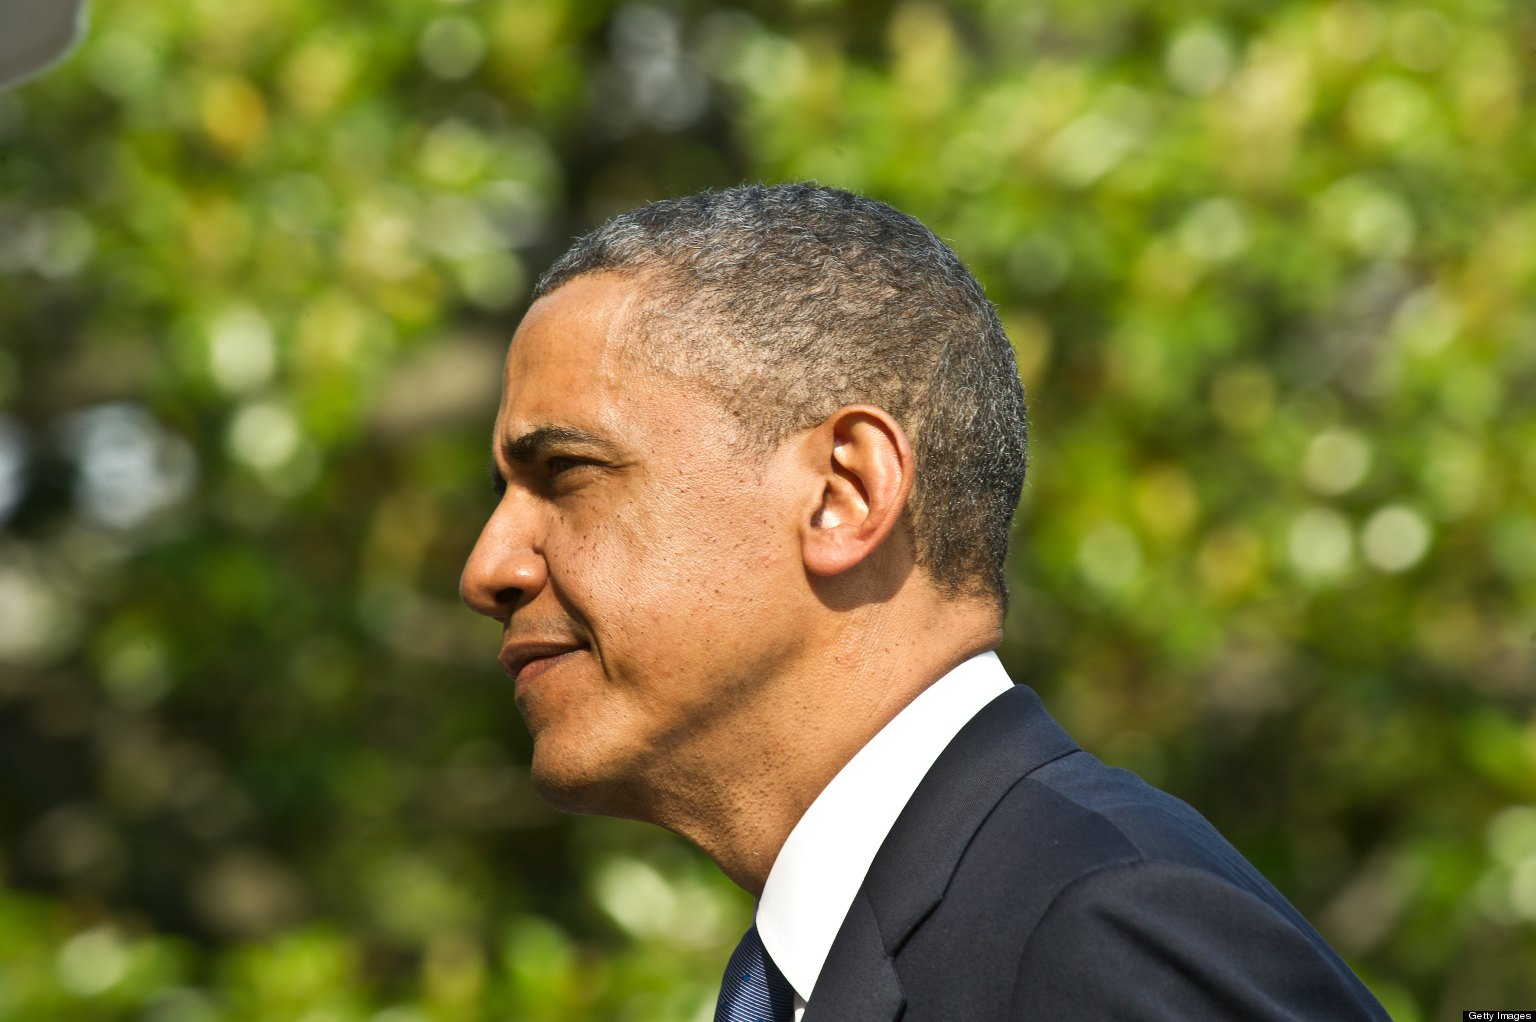 'Gay' Obama Should 'Come Out Of The Closet,' Says Pundit